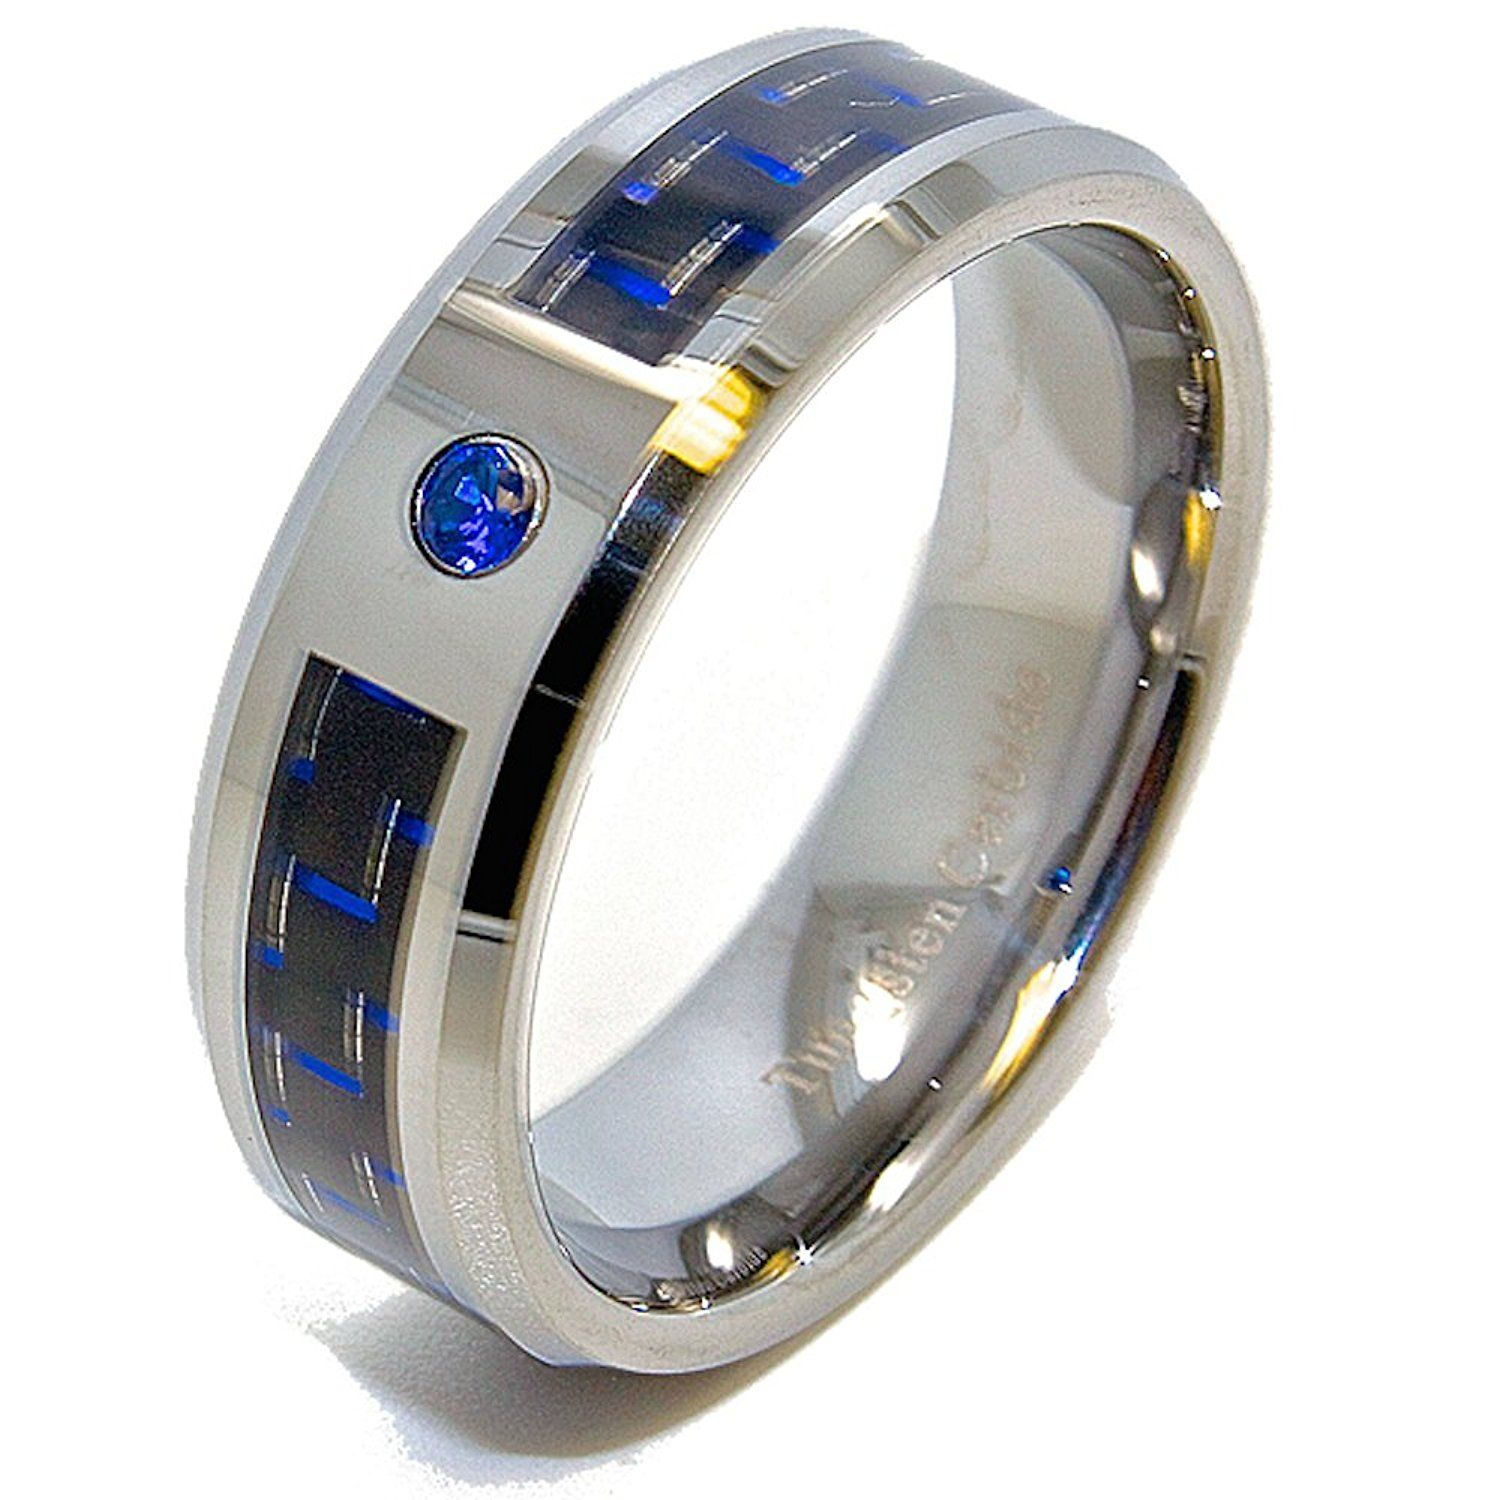 black fiber band loading diamond cobalt rings chrome wedding carbon inlay ring zoom